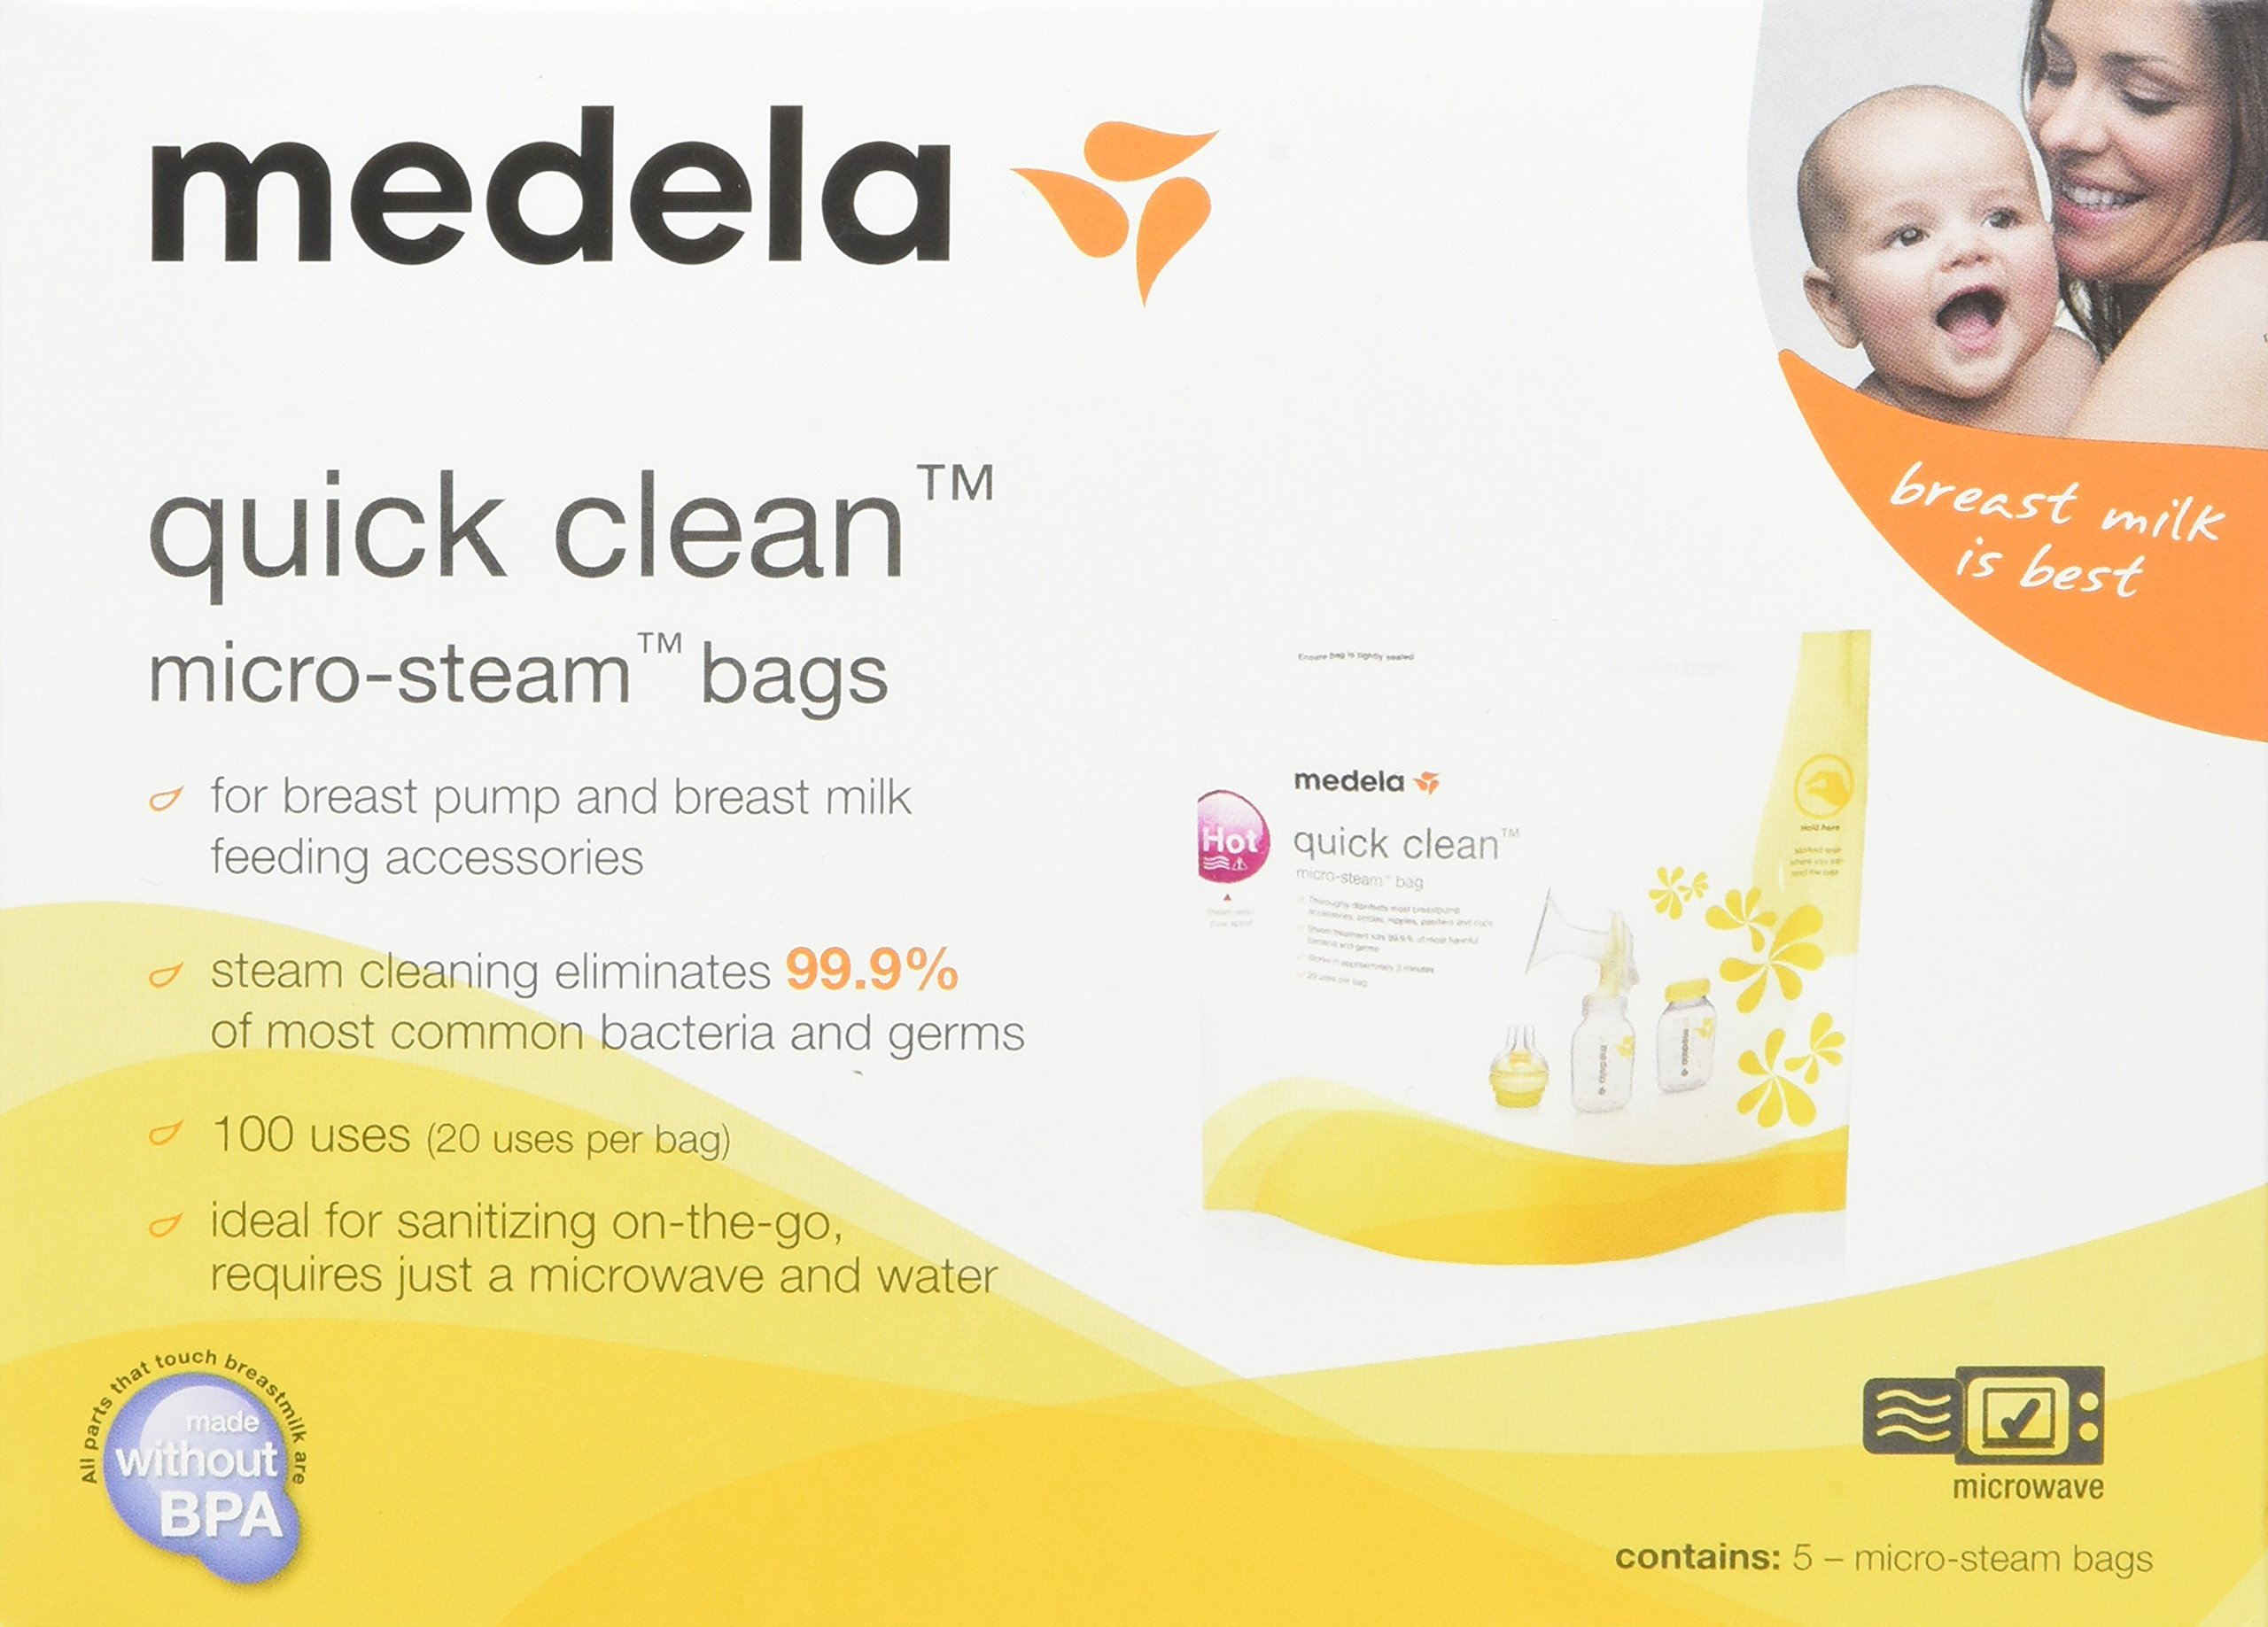 Medela Quick Clean Micro-Steam Bags Economy Pack of 4 retail boxes (20 Bags Total)